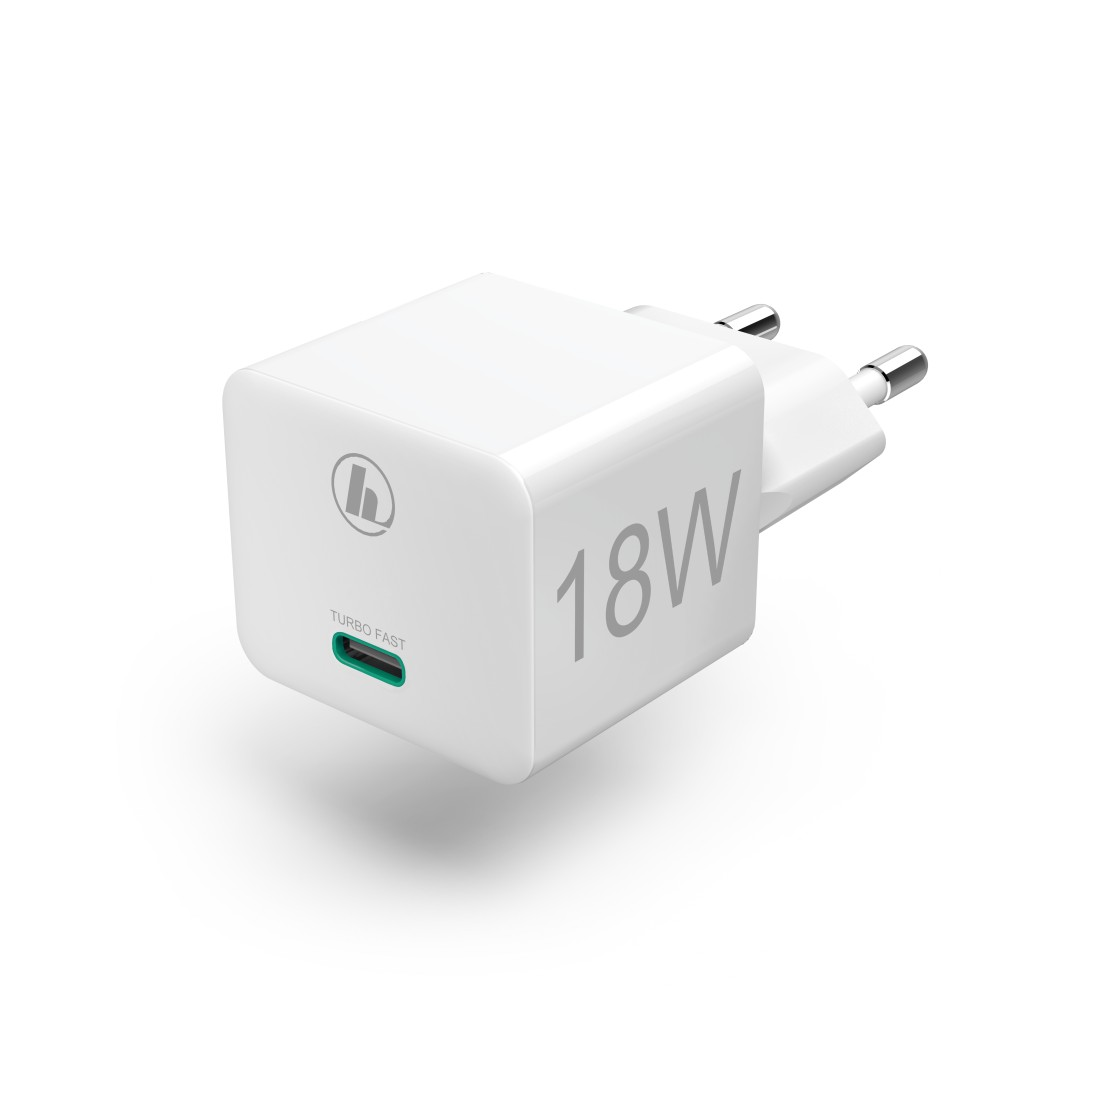 abx High-Res Image - Hama, Mini Charger, USB-C, PD/QC, 18 W, white